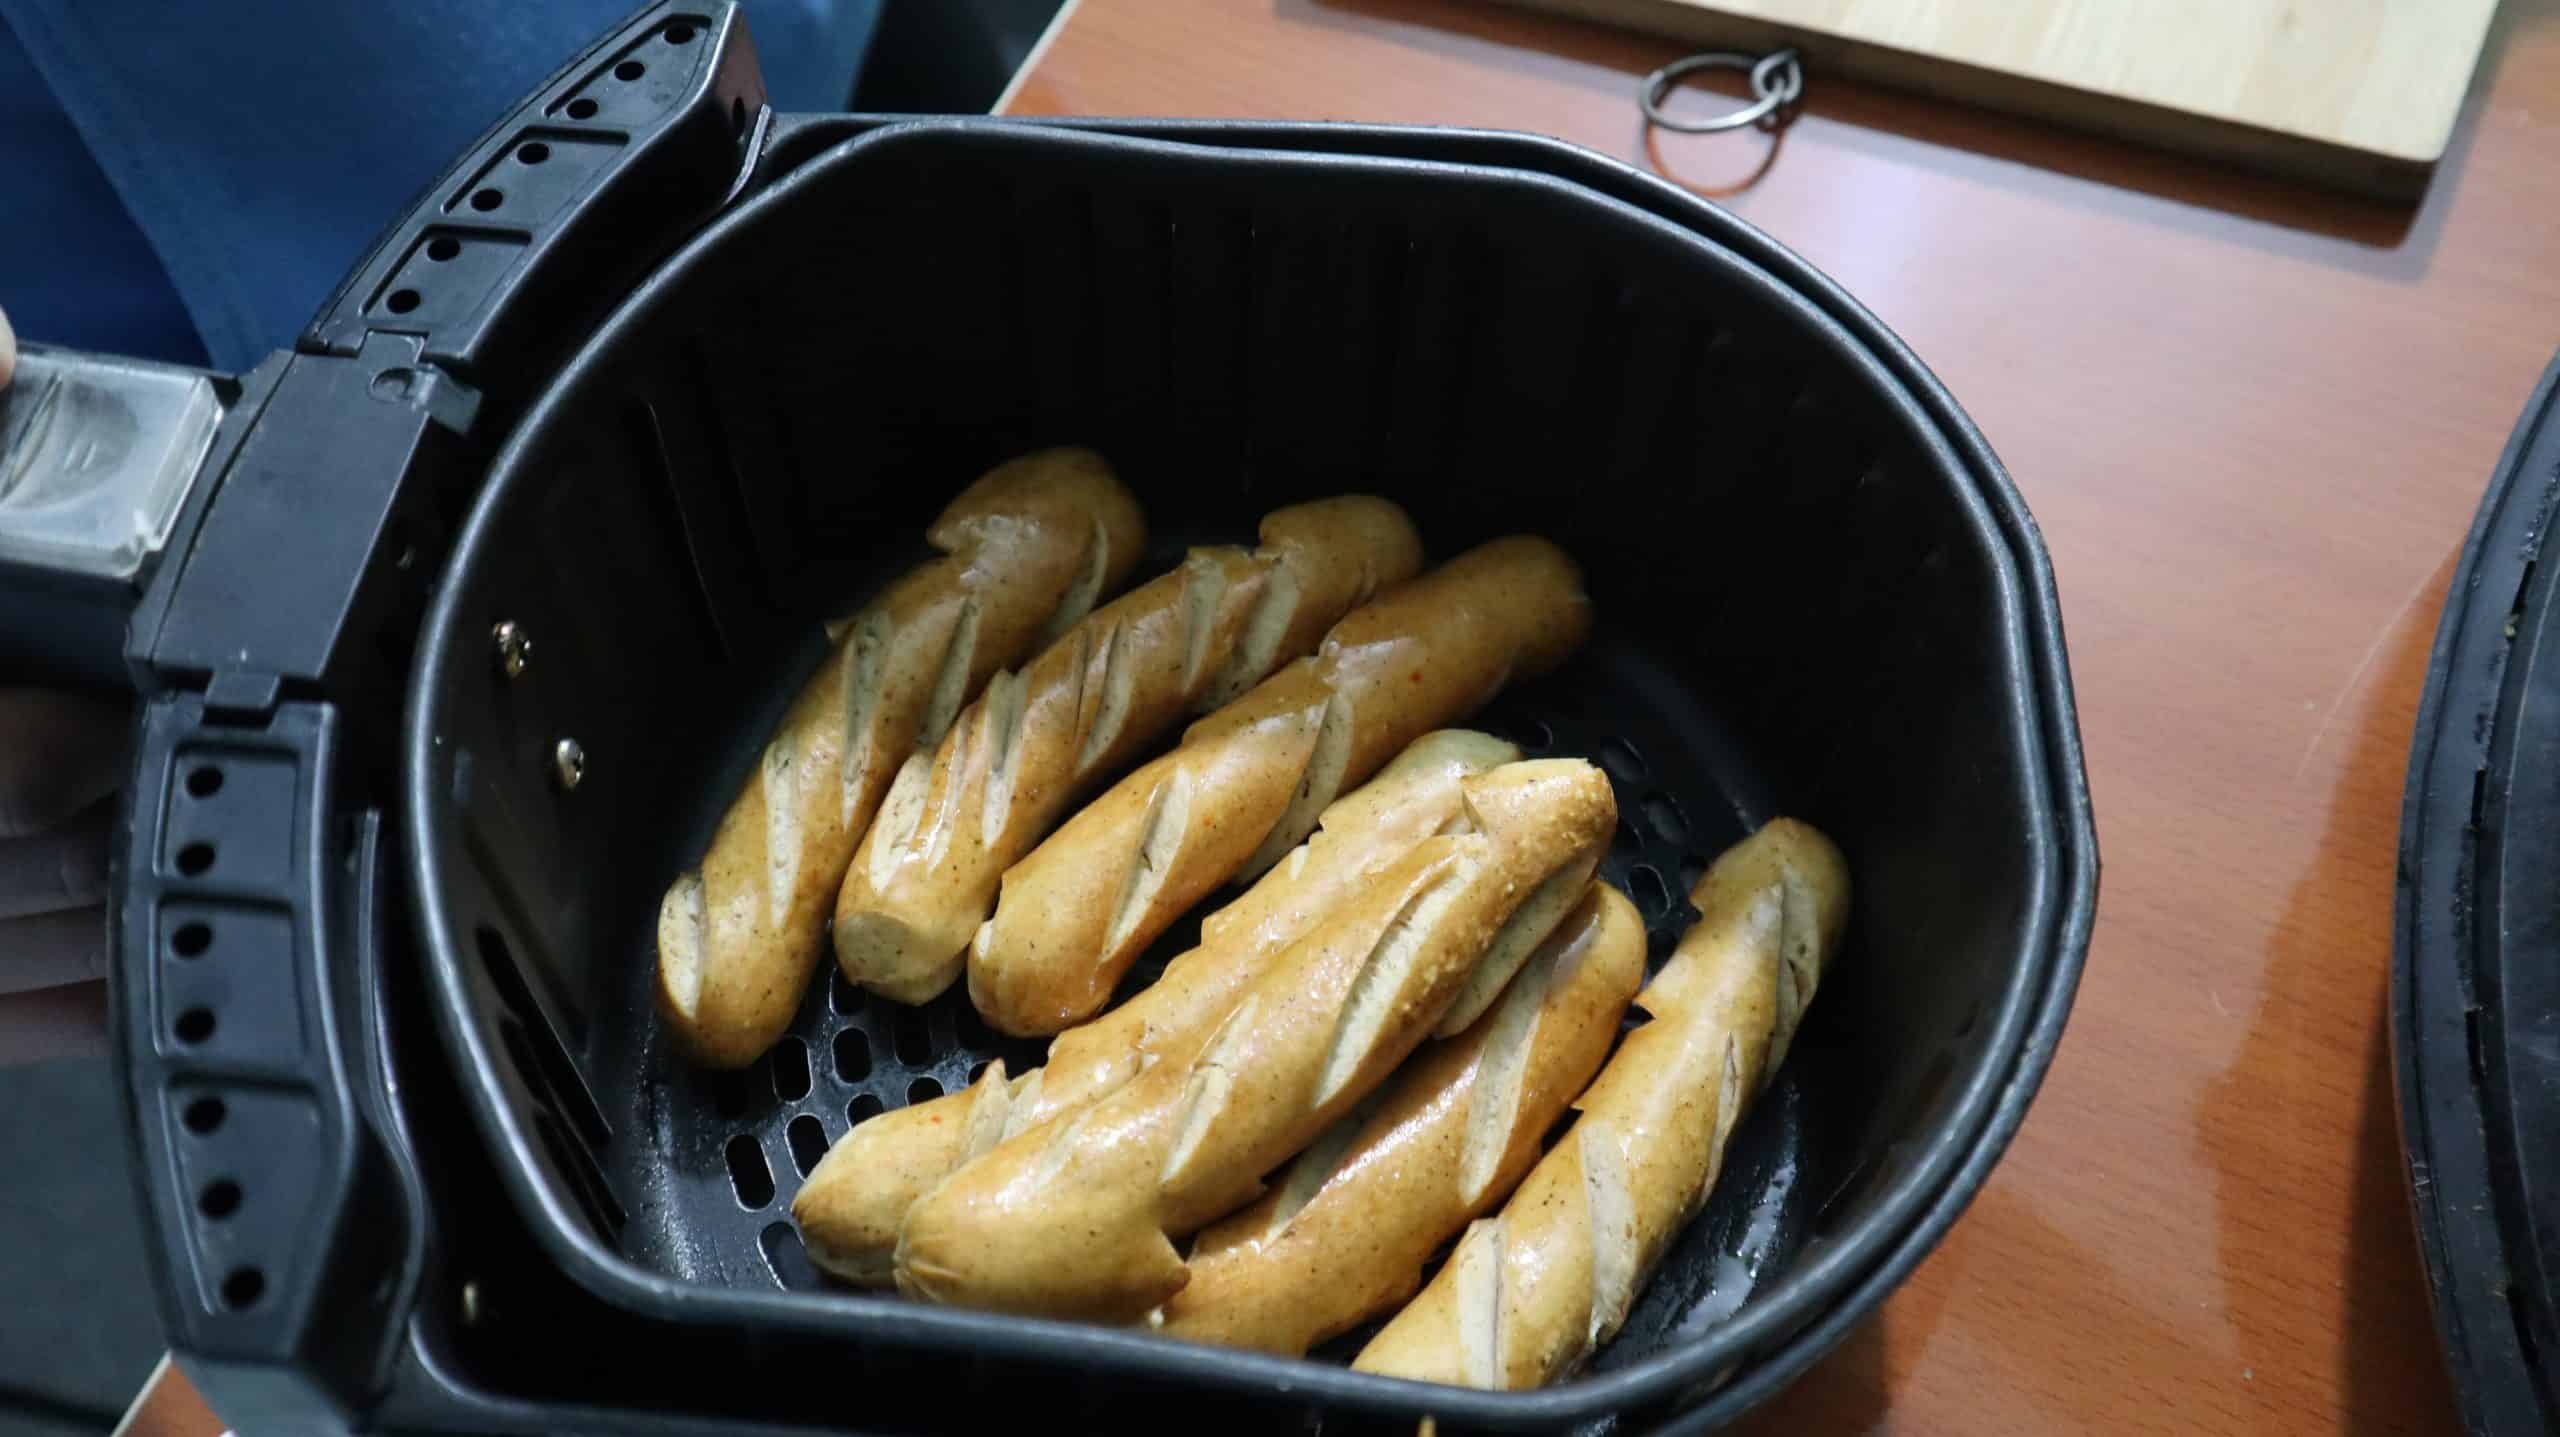 cooked sausage in air fryer